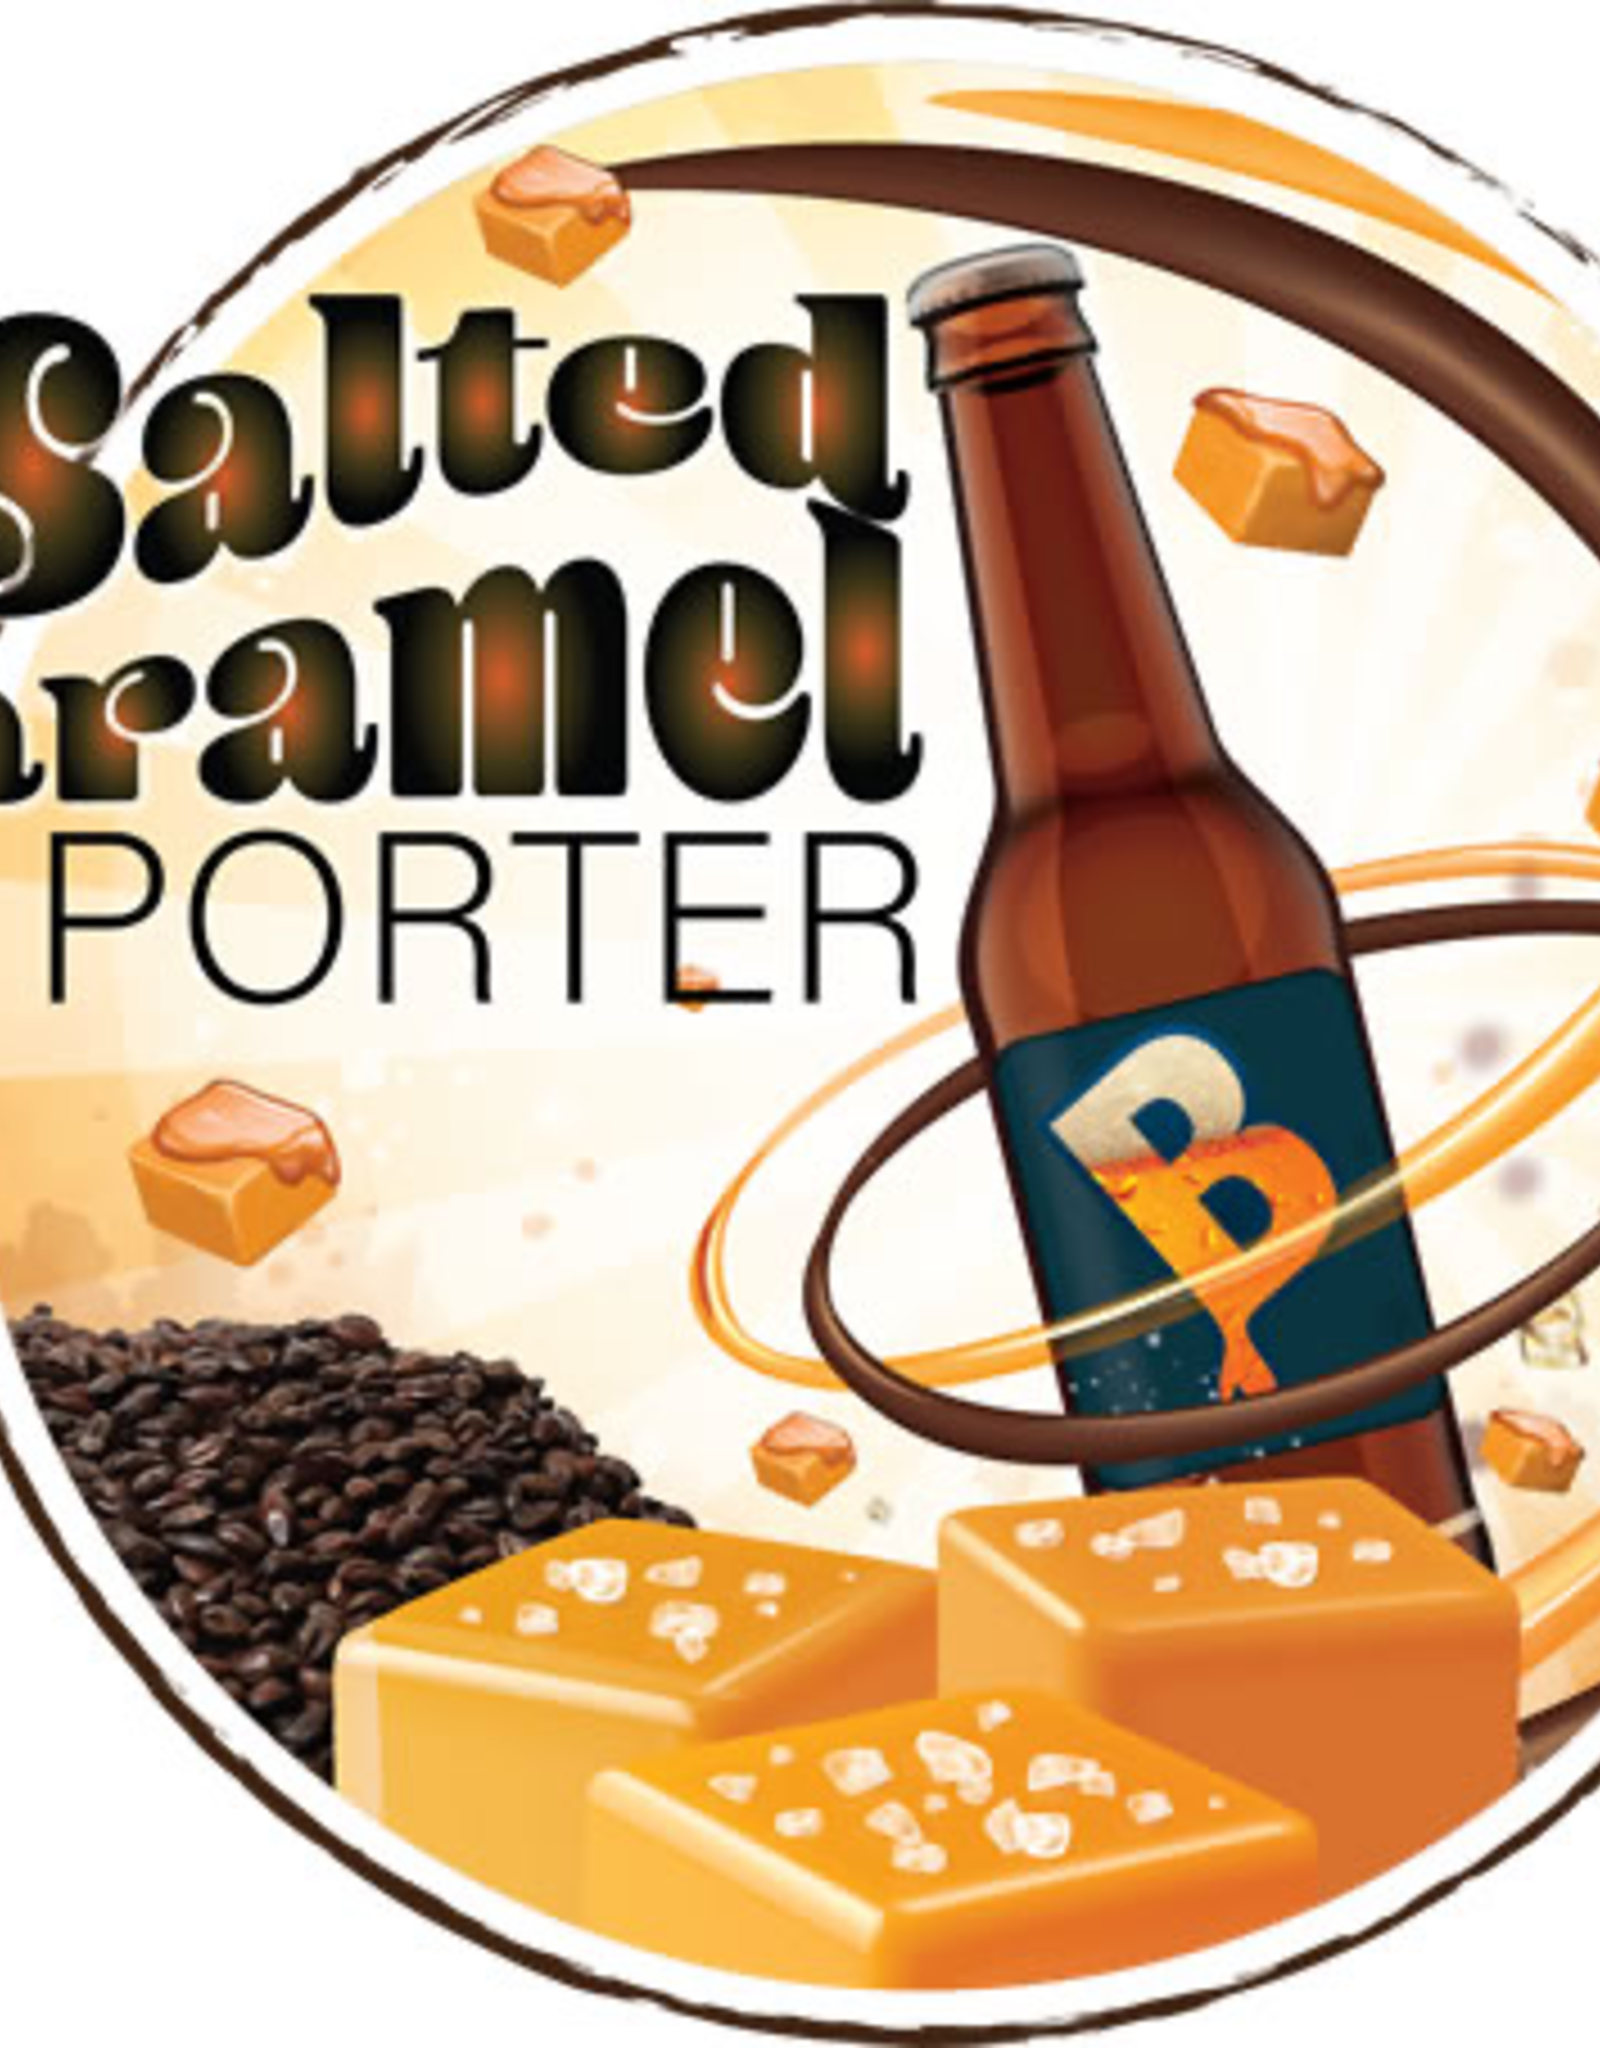 BREWERS BEST Brewed with select GoldSwaen specialty malts to create a rich, malty base with notes of biscuit, toffee & caramel. The addition of brewer's sea salt & natural caramel flavoring craft a delicious, dessert-like porter that will will complement any holiday f